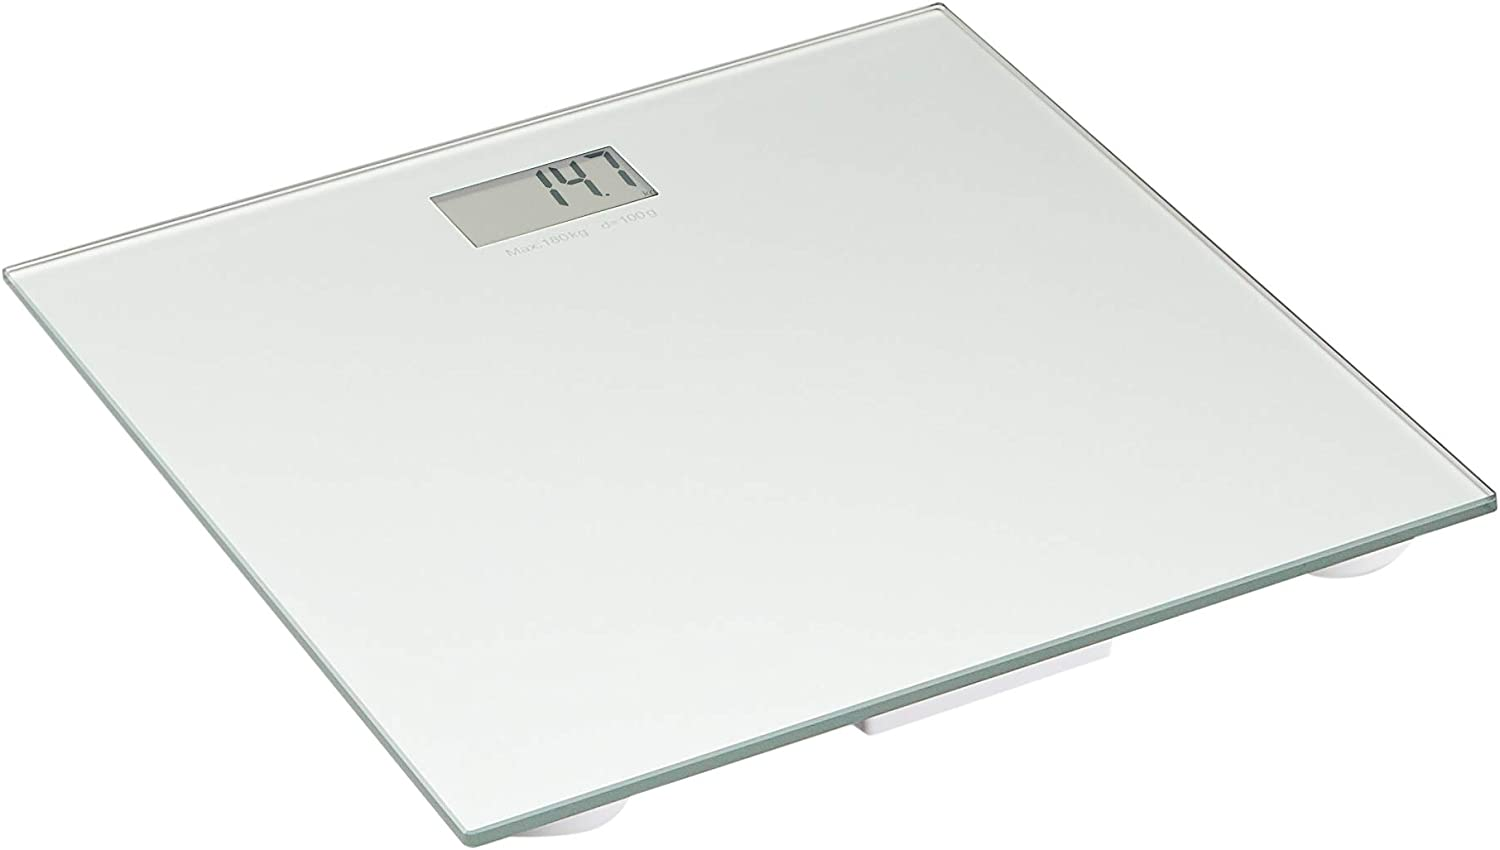 AmazonBasics Body Weight Scale - Auto On/Off Function with Backlight, Silver